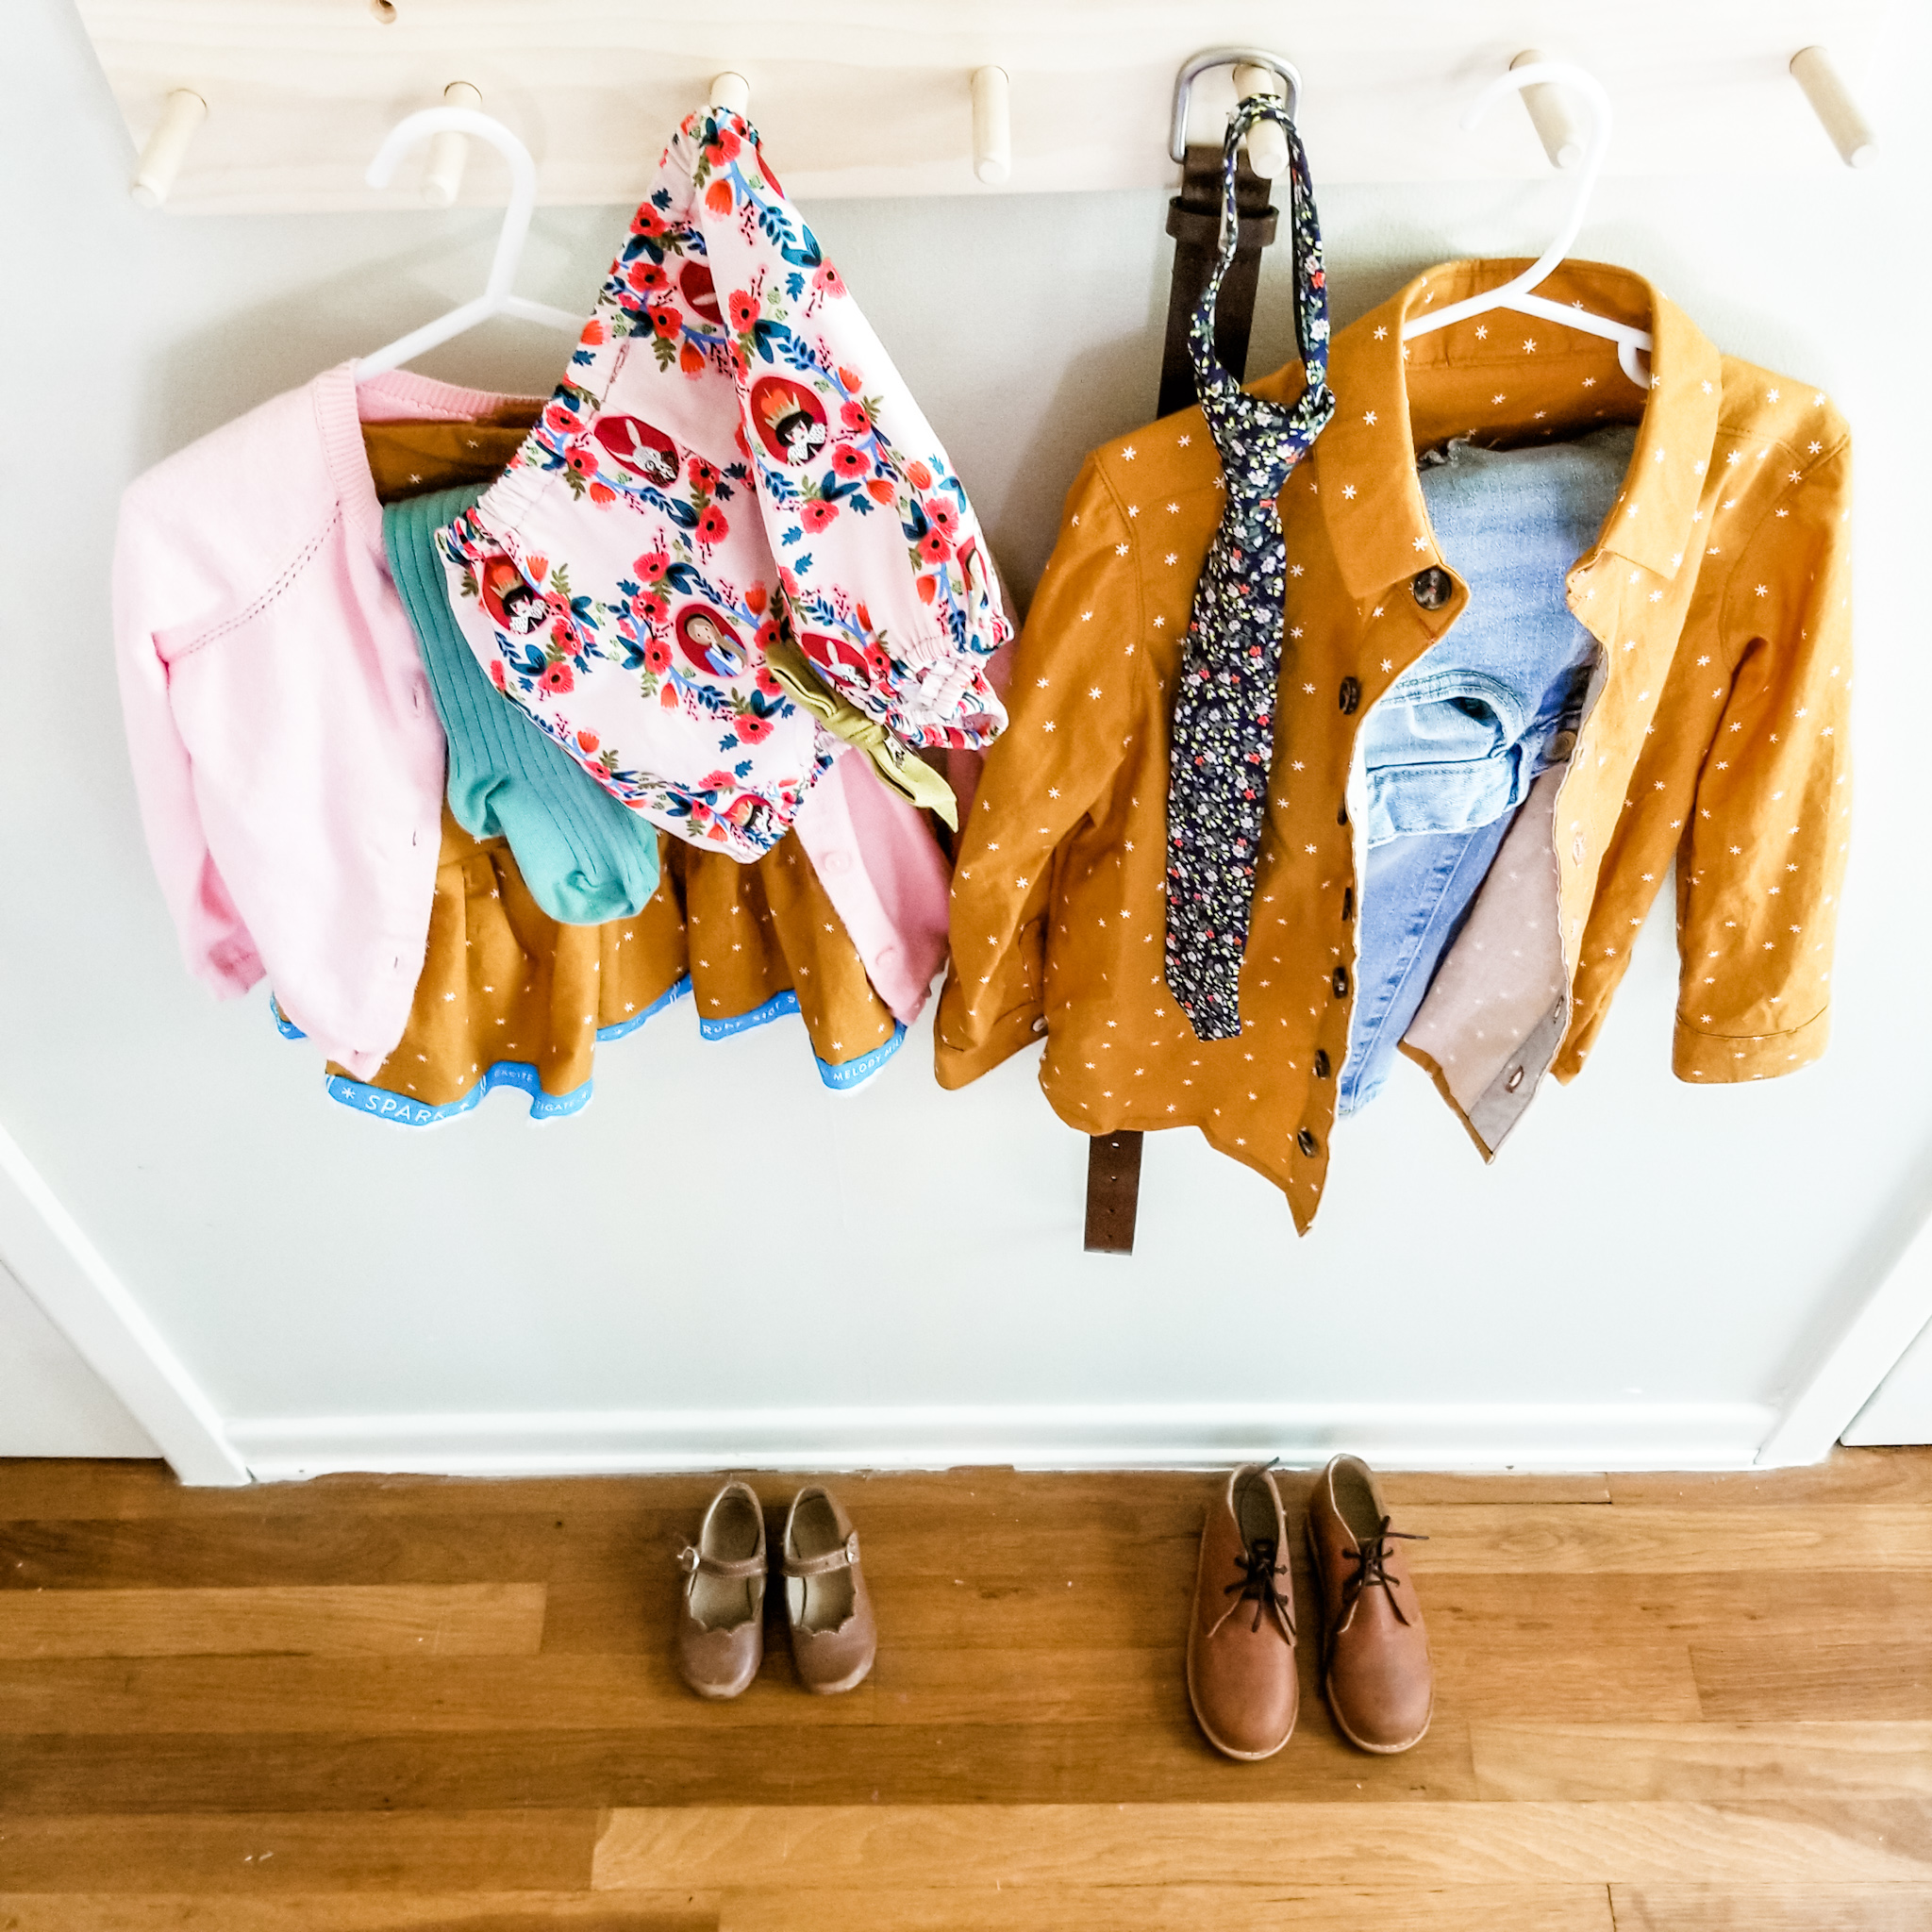 Tip: have your kids pick out their outfit the night before. It really seems so simple and easy, and you might have heard this tip 10000 times before, but it really does make our mornings that much smoother and has fast become apart of our bedtime routine!